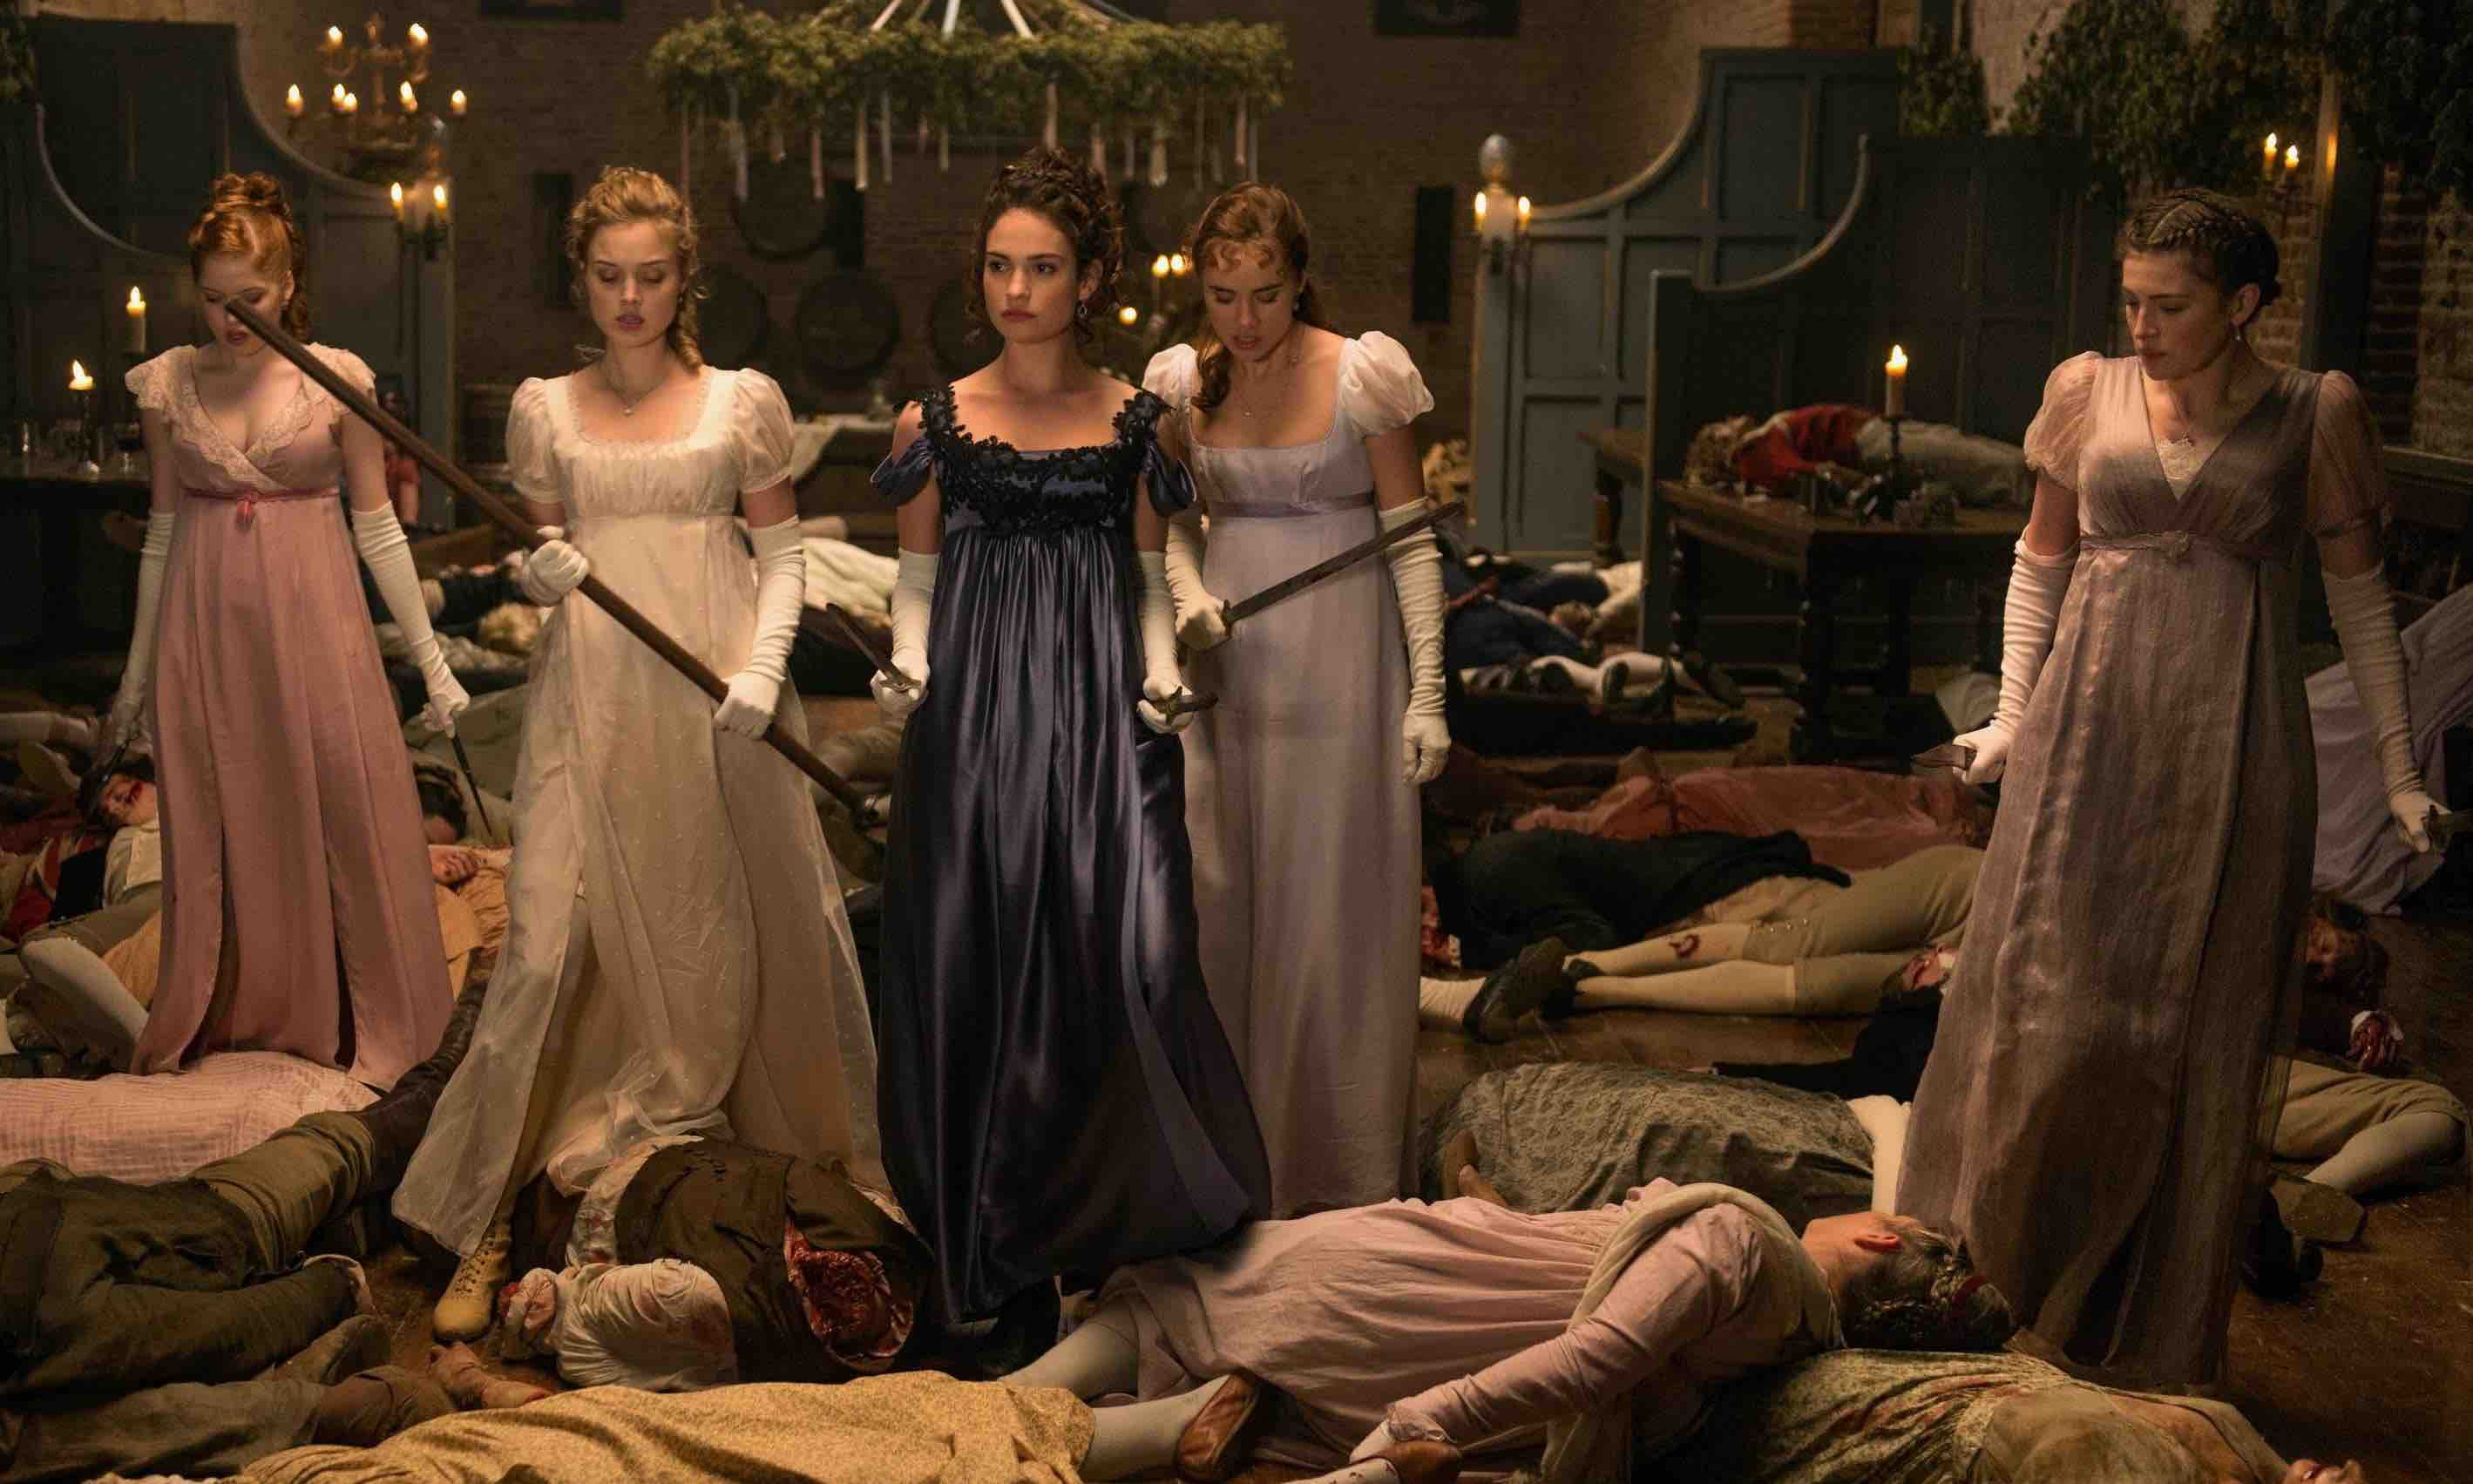 BT TV Pride & Prejudice & Zombies